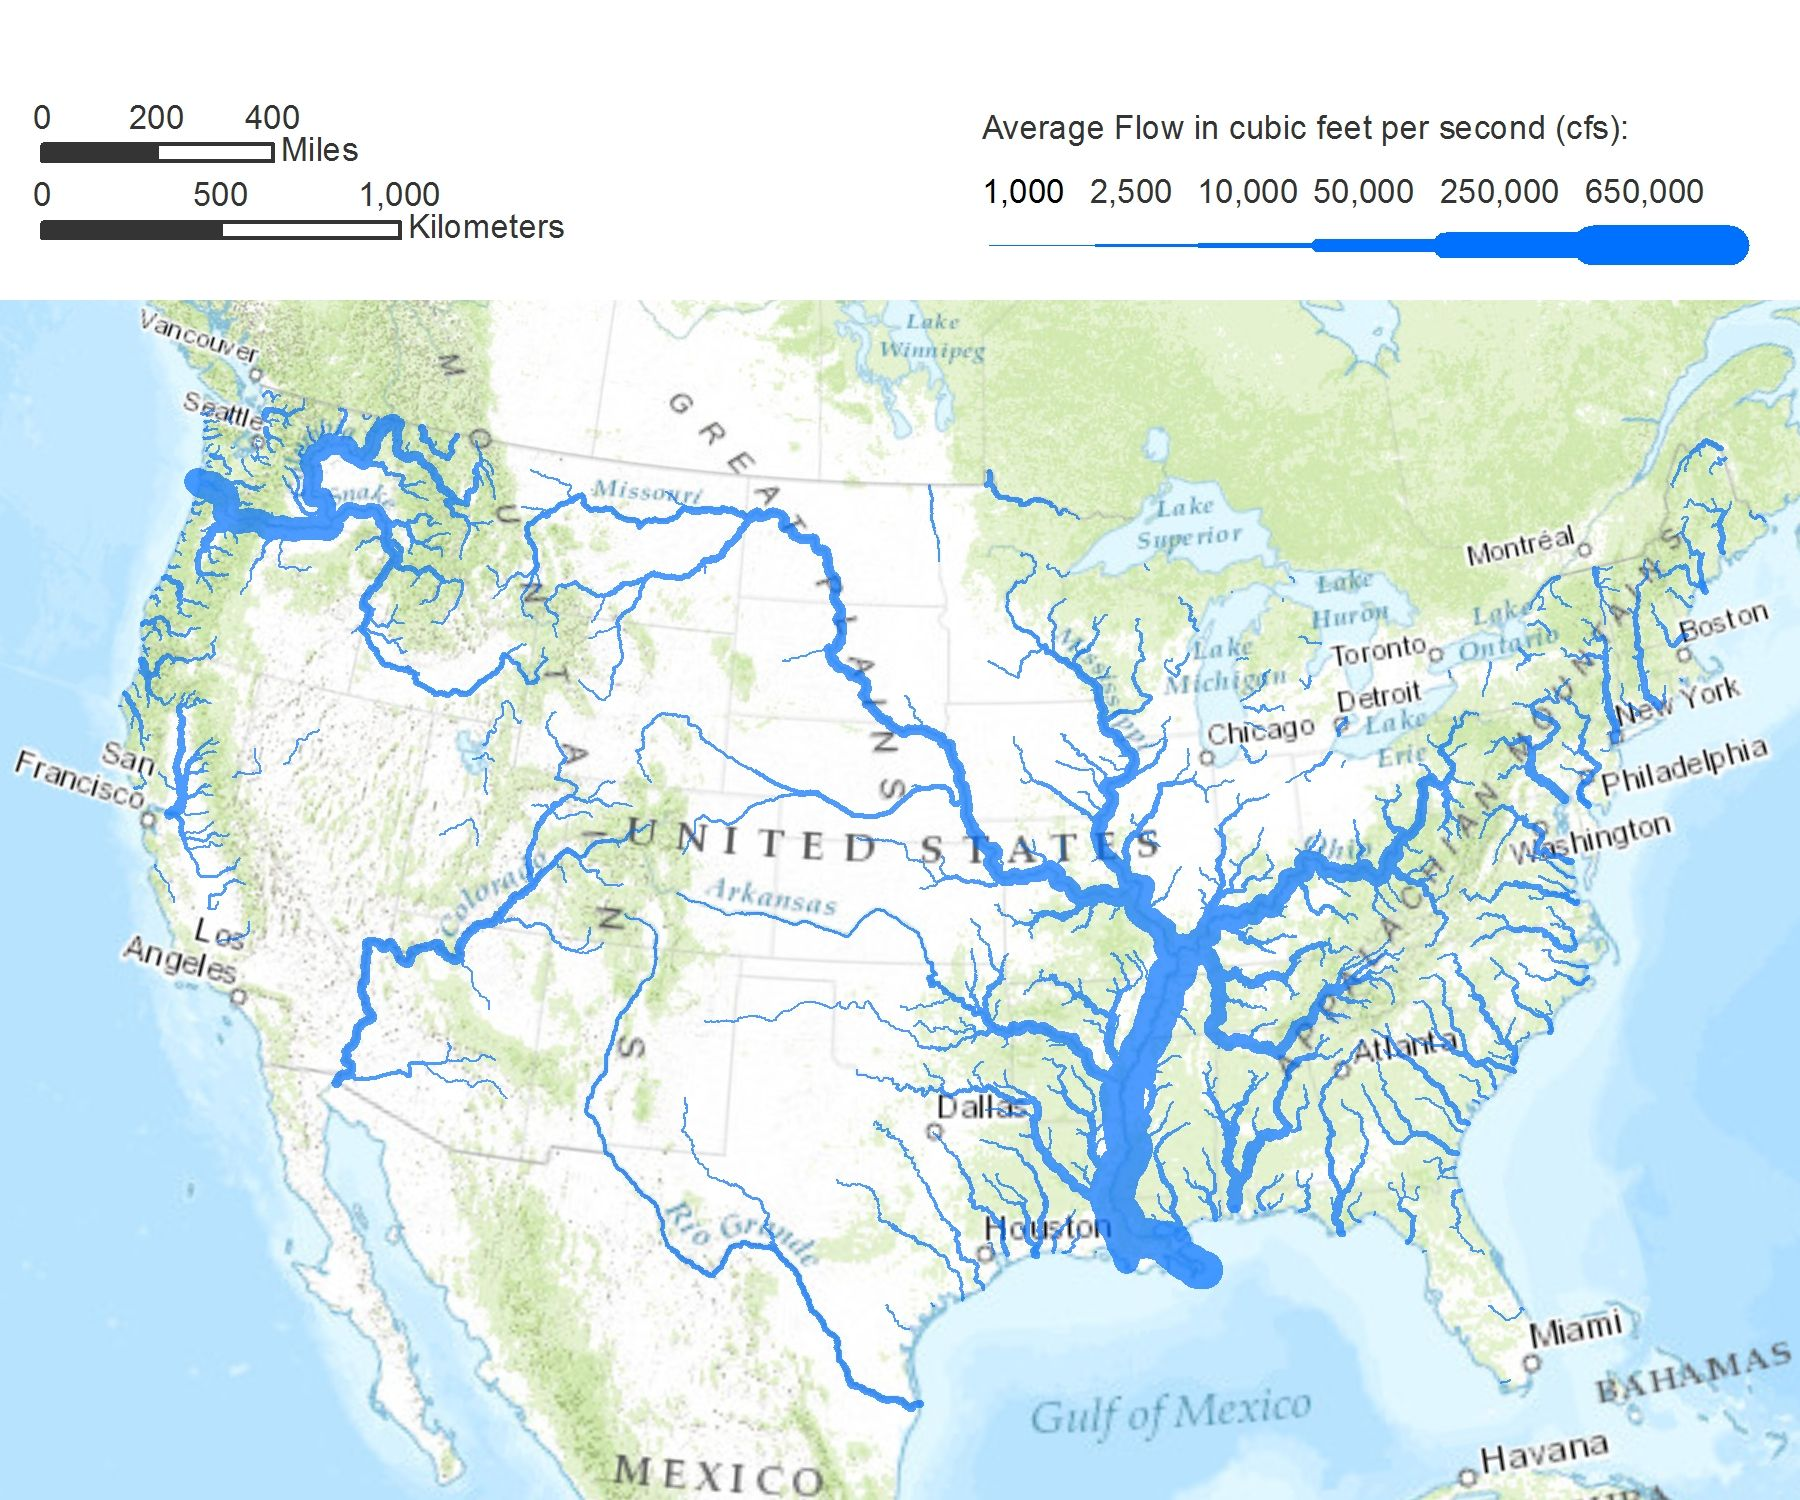 United States Rivers Map Where In The World Pinterest Rivers - Usa rivers